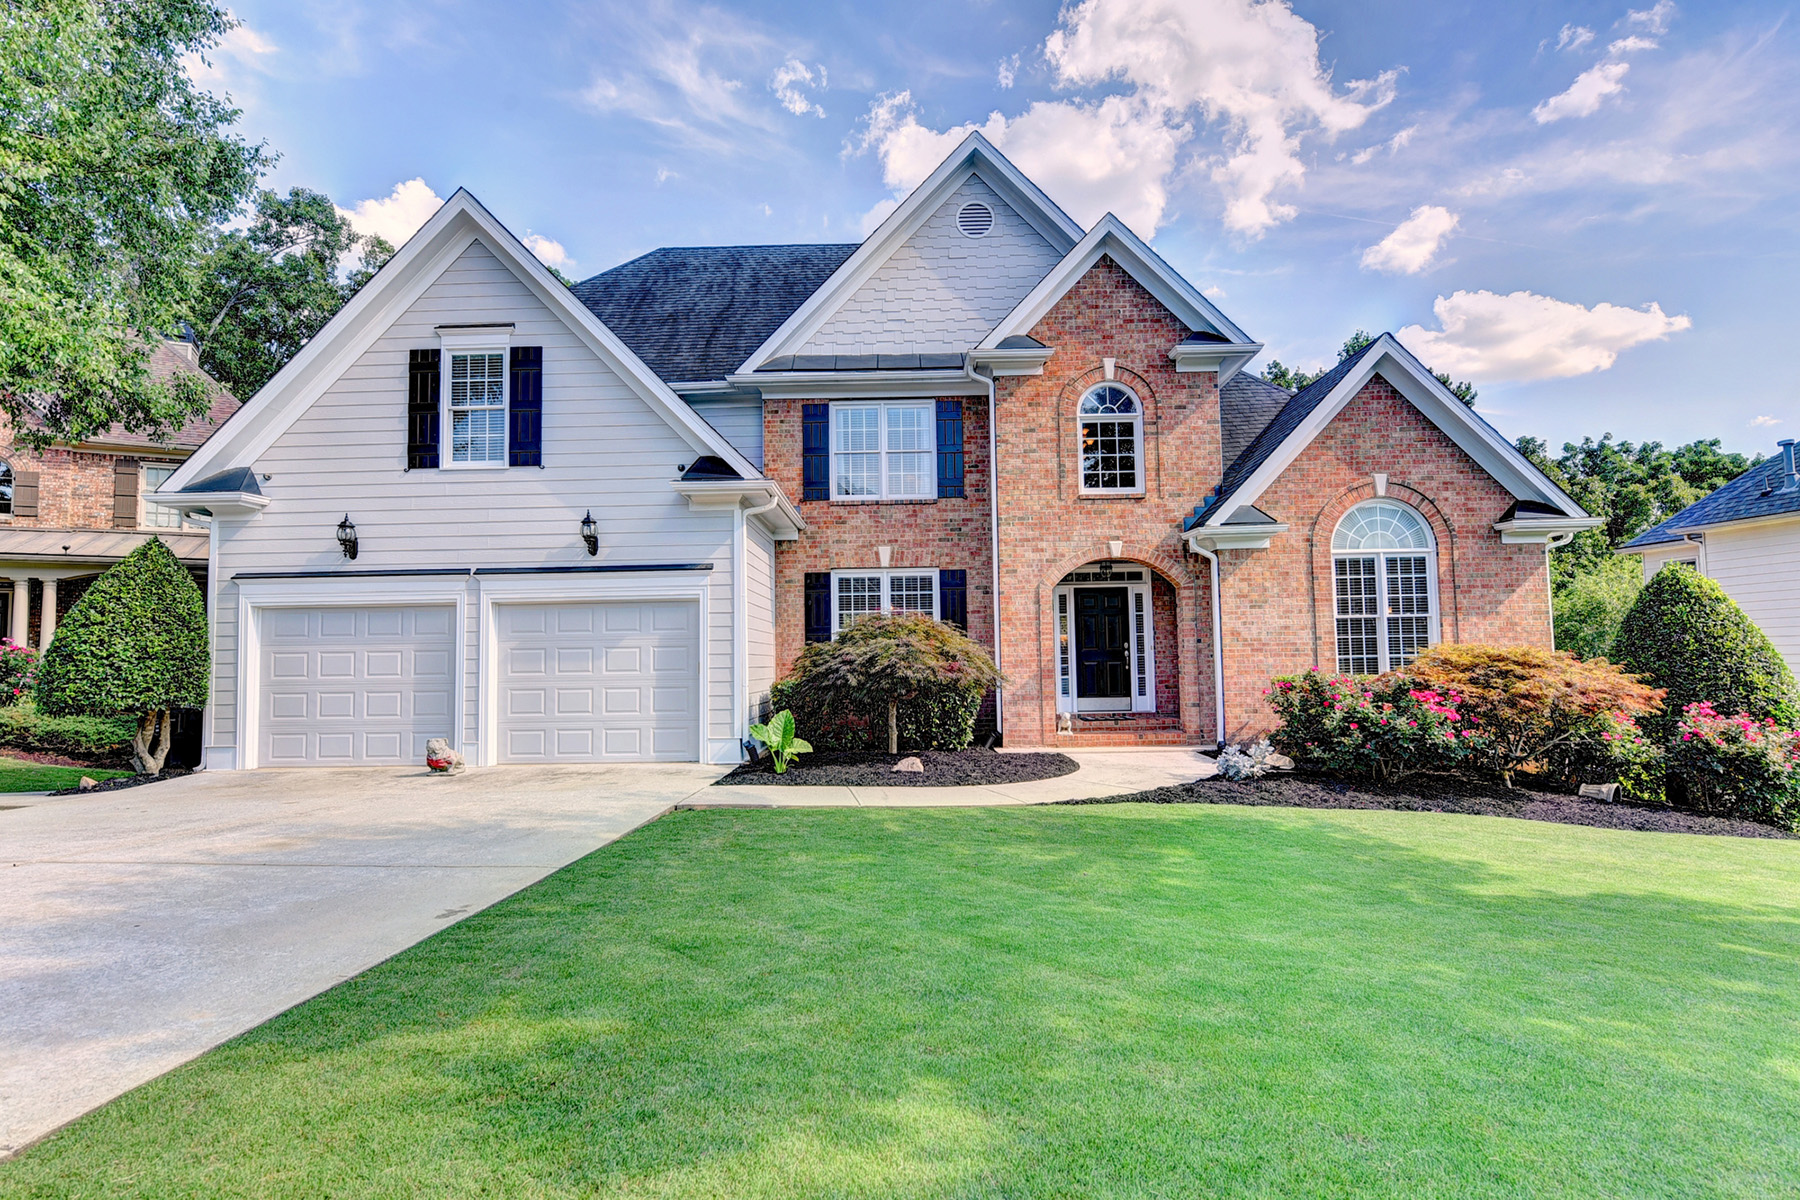 Single Family Homes for Active at An Entertainer's Dream In Hamilton Mill 3910 Lantern Hill Drive Dacula, Georgia 30019 United States